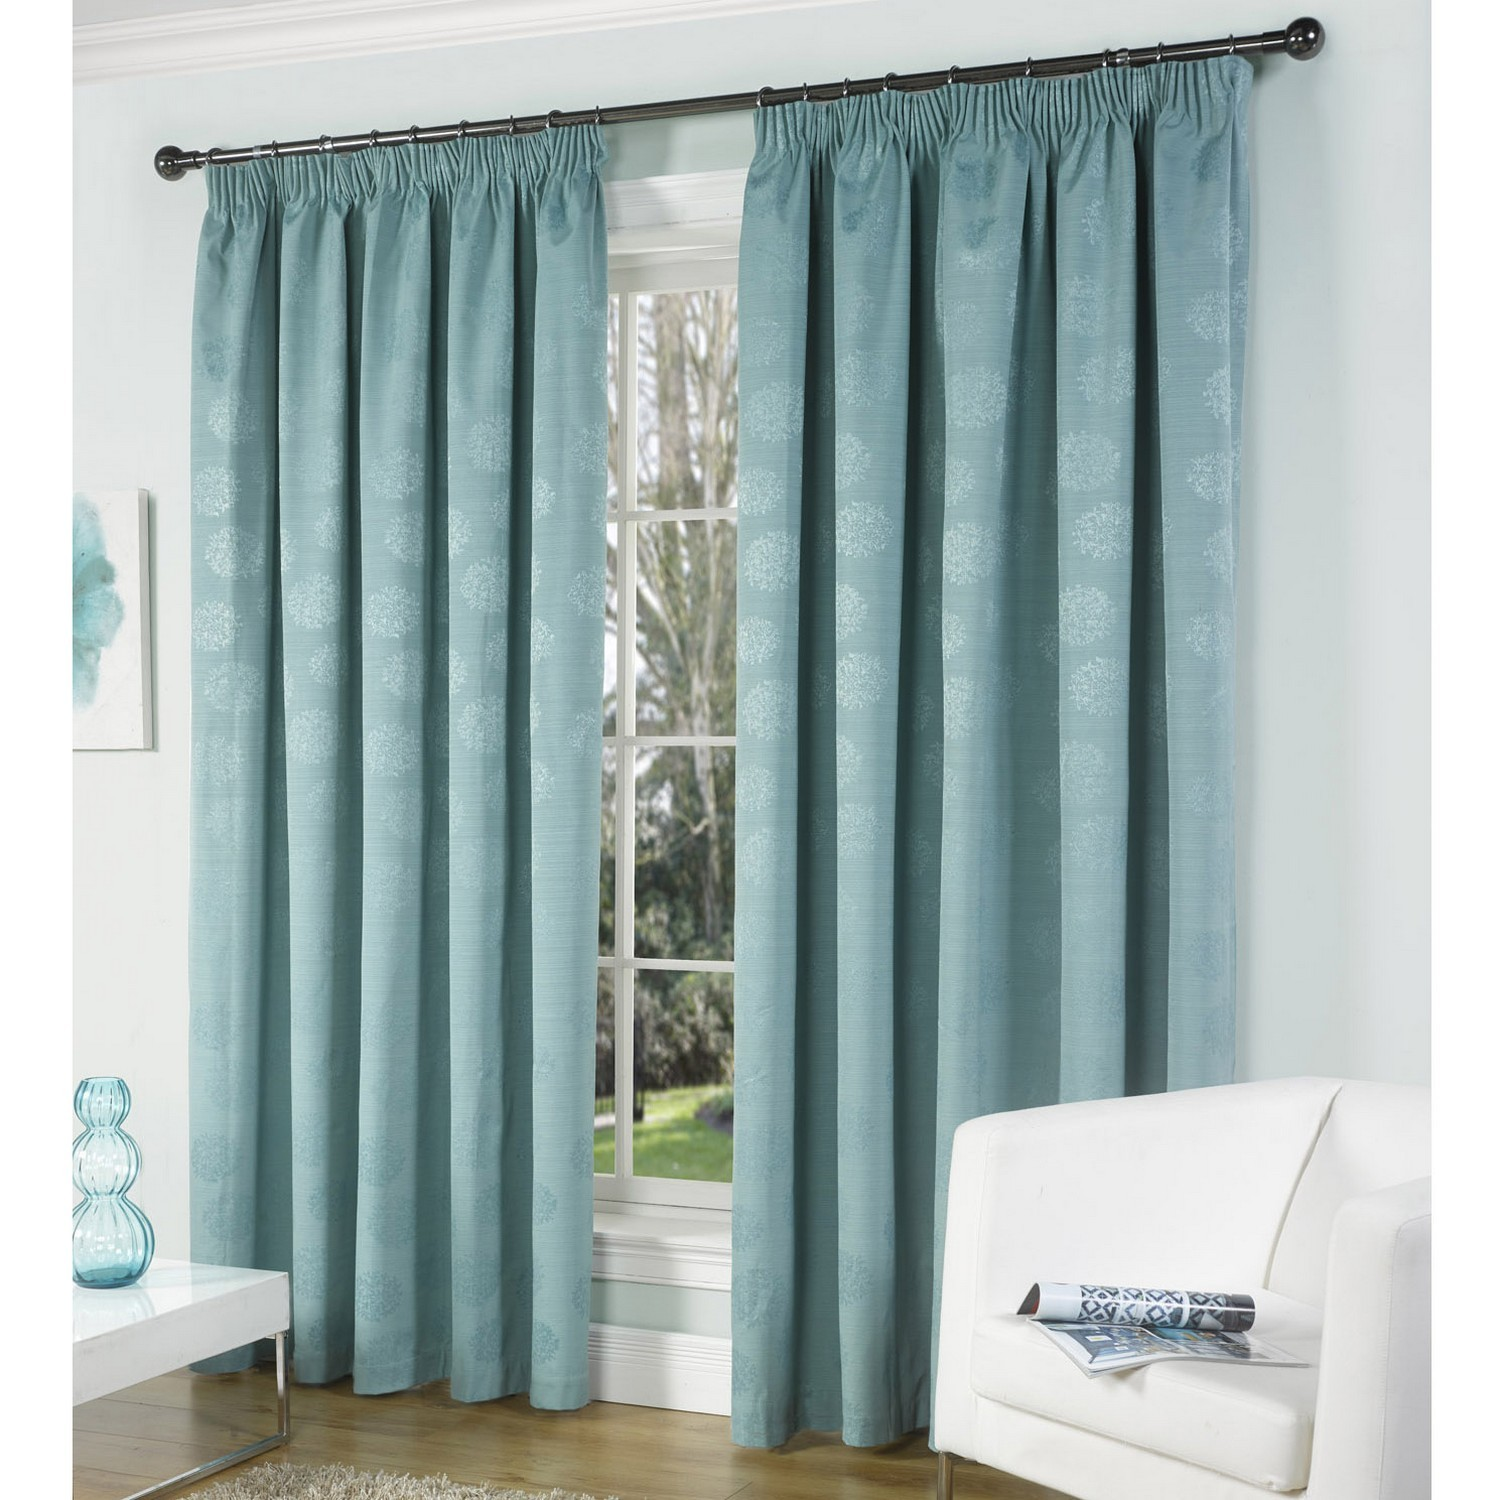 Light teal curtains - Curtains Gallery